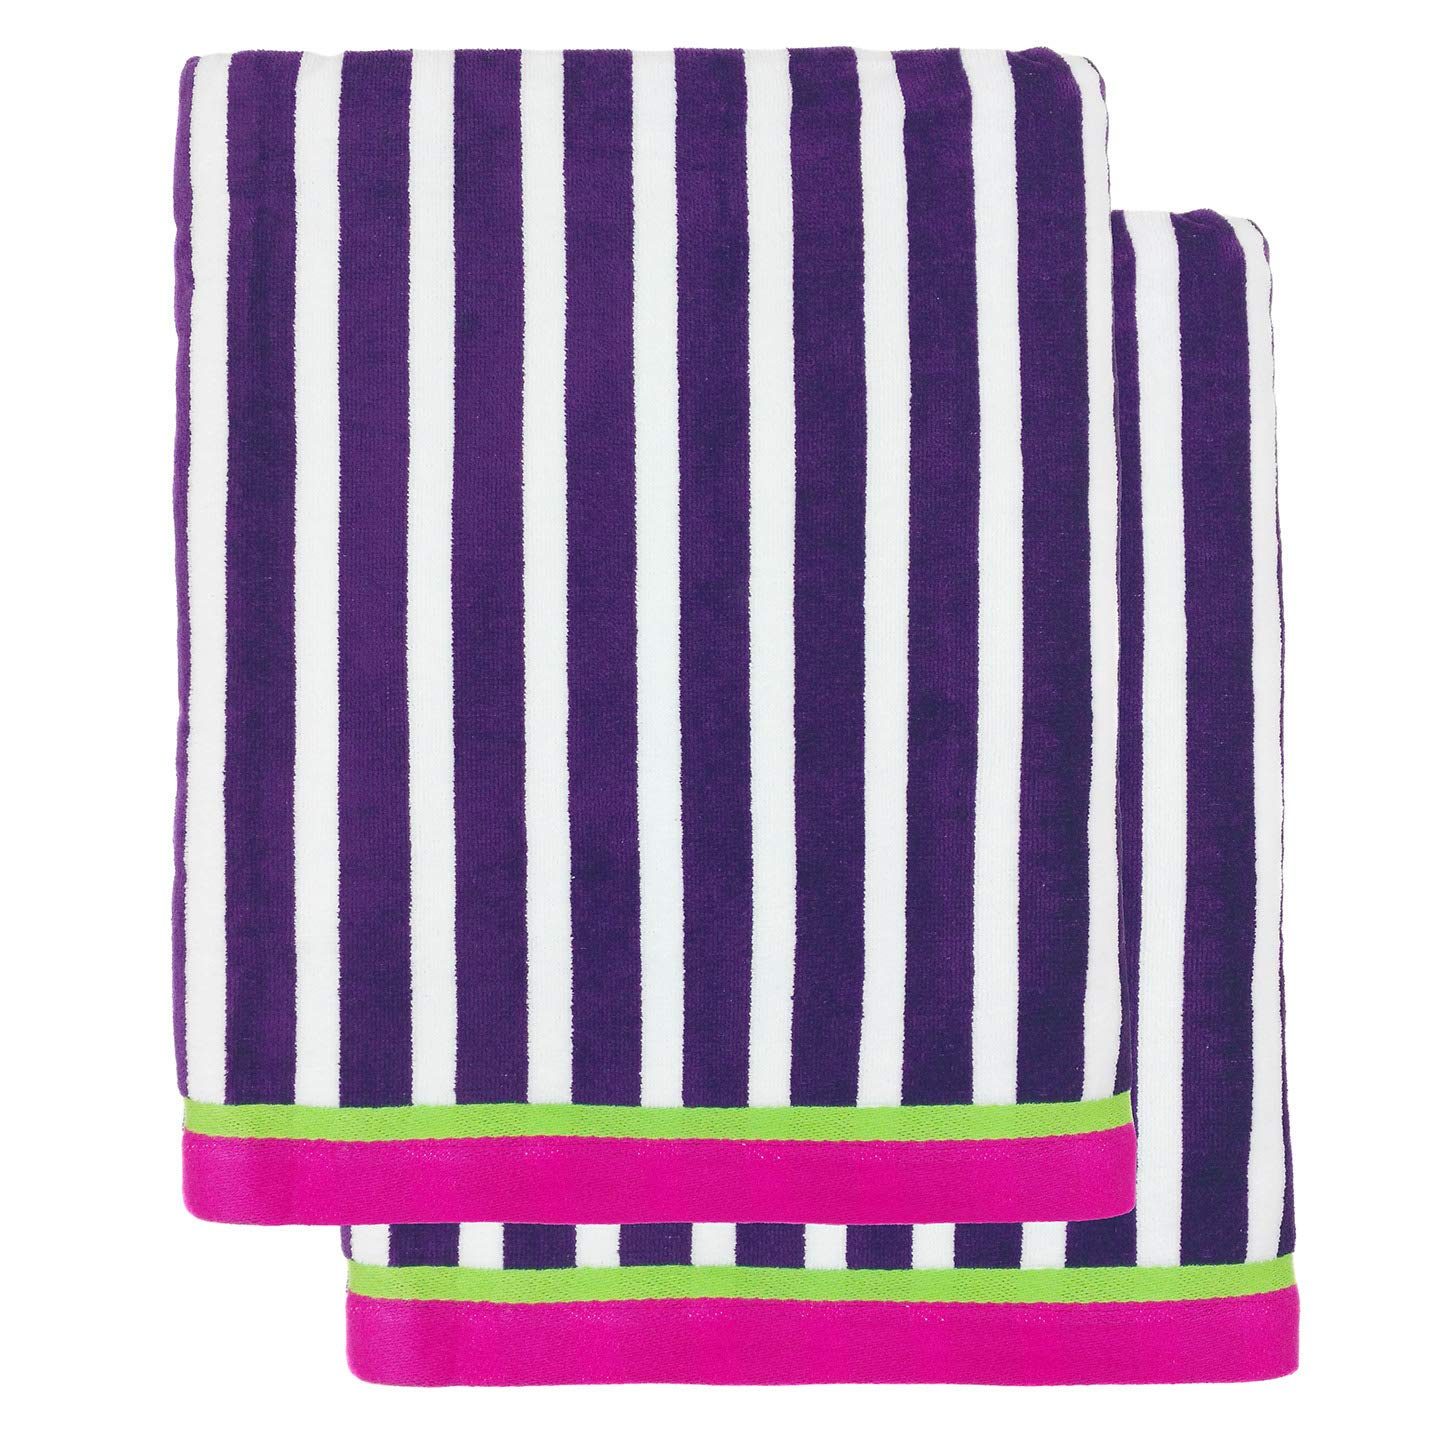 Kaufman - Oversized 40'' X 70'' Stripe Color Velour Super Soft Beach and Pool Towel Set of 2 Pieces Easy Care, Extra Large (Purple)